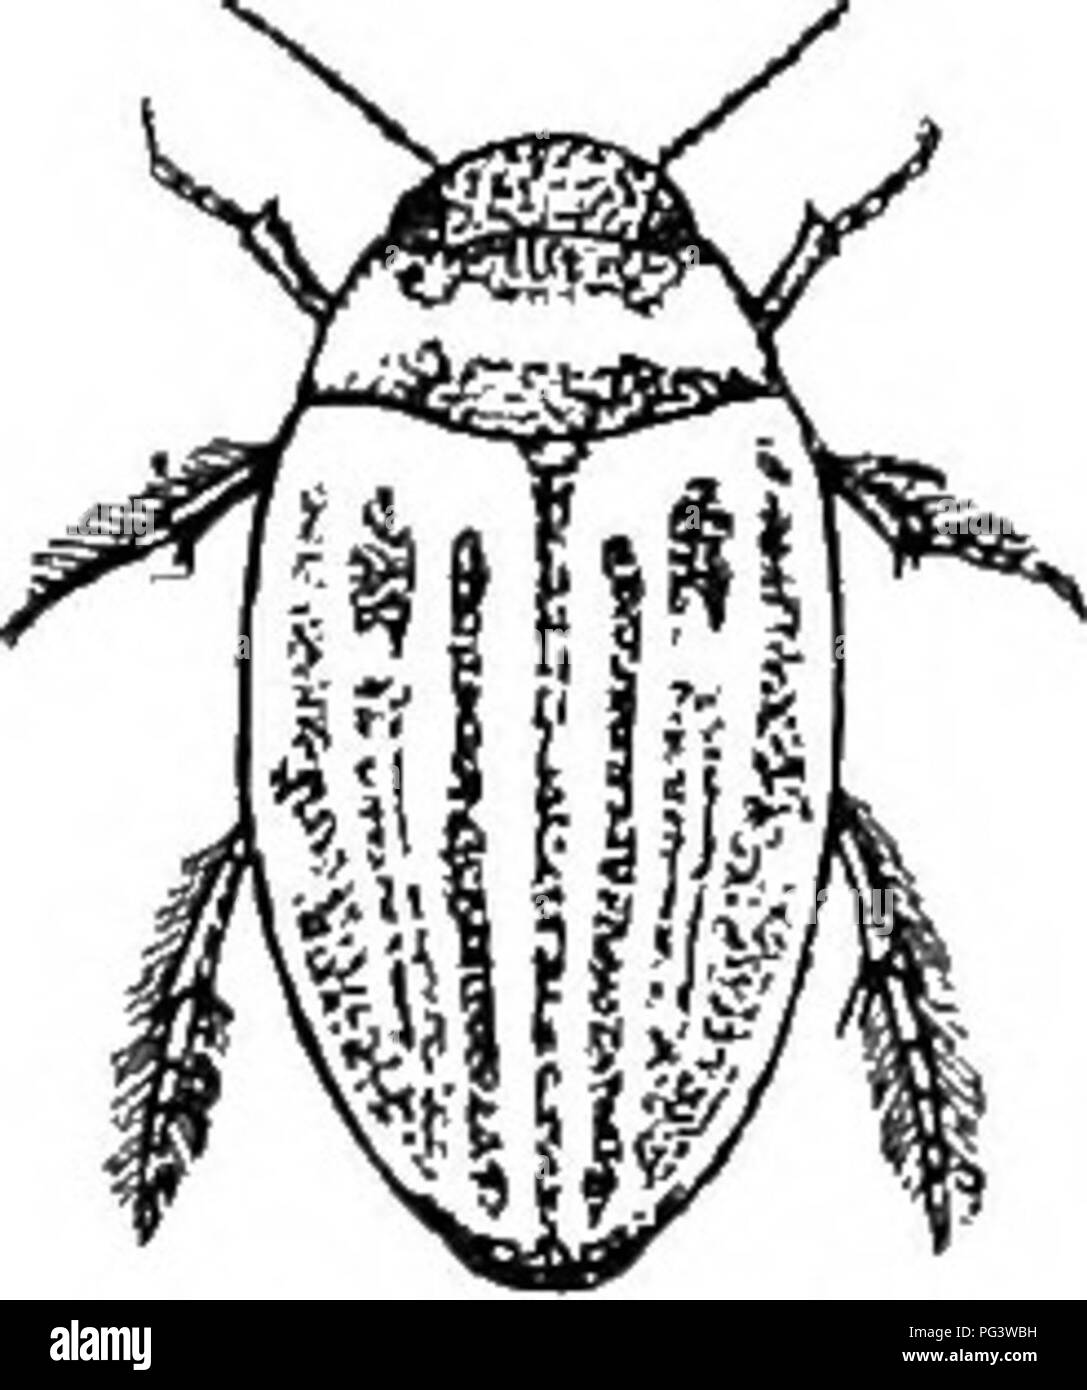 an illustrated descriptive catalogue of the coleoptera or beetles Head-Fi Computer Audio an illustrated descriptive catalogue of the coleoptera or beetles exclusive of the rhynchophora known to occur in indiana with bibliography and